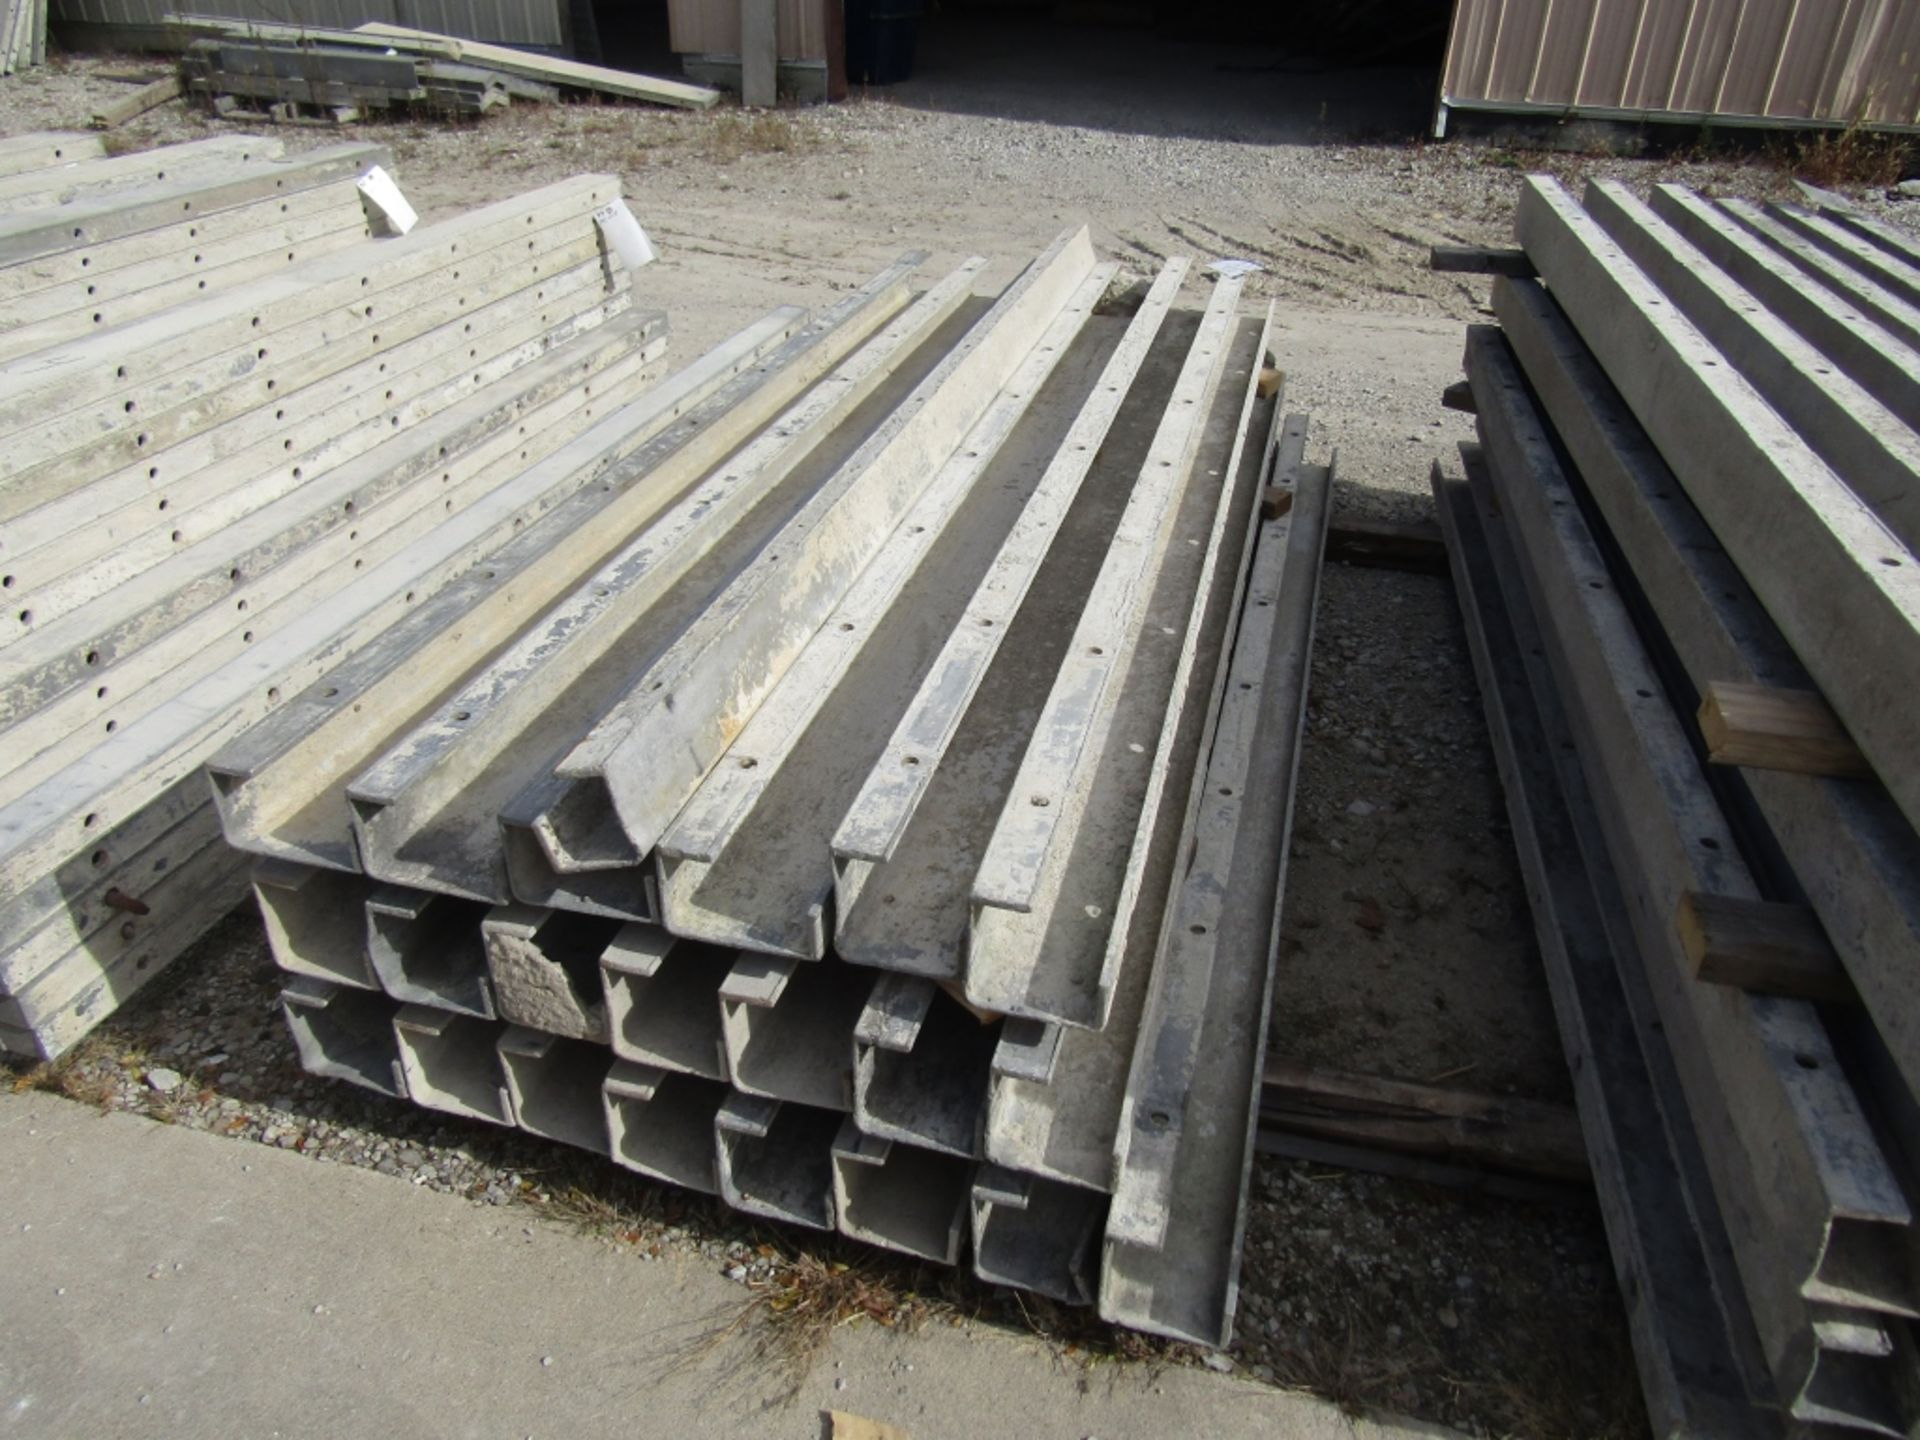 """(17) 5""""x5""""x8' & (4) 6""""x4""""x8' Durand Concrete Forms, Inside Corners, Smooth 6-12 Hole Pattern, Full - Image 3 of 3"""